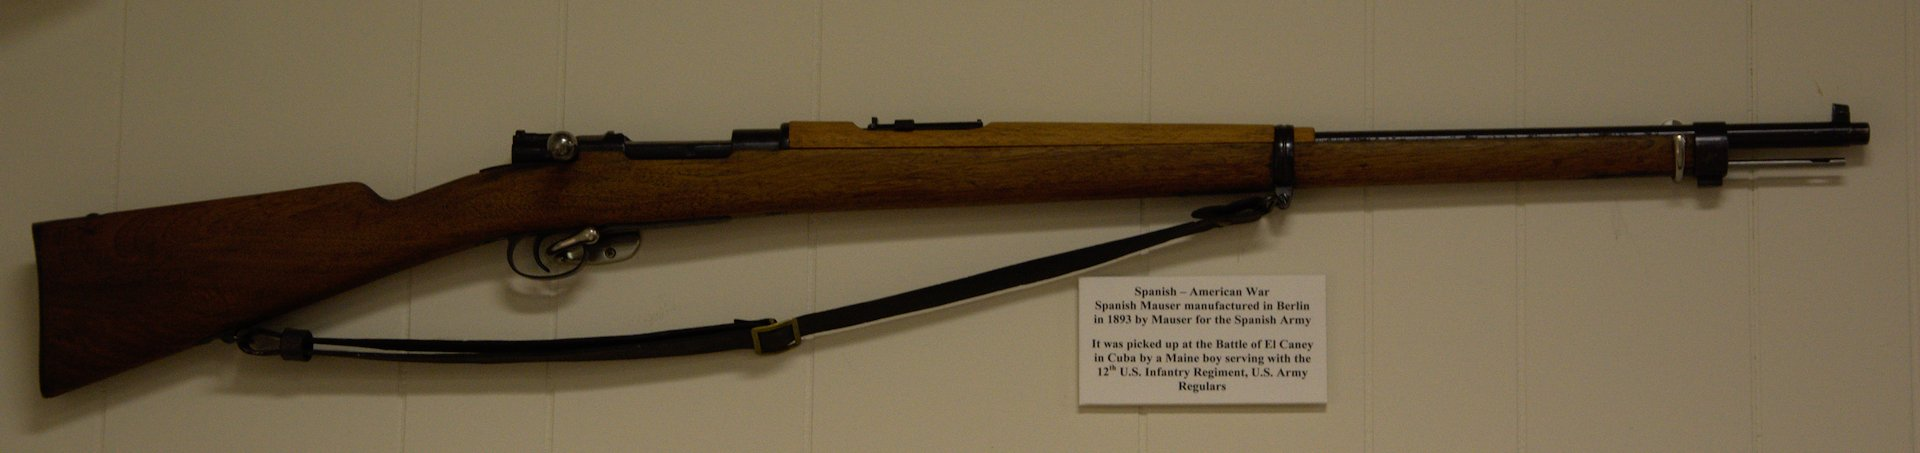 Spanish Mauser made in Berlin, Germany for the Spanish Army. It was captured by a Maine boy with the 26th Regiment of Regulars in Cuba and brought home after the war.